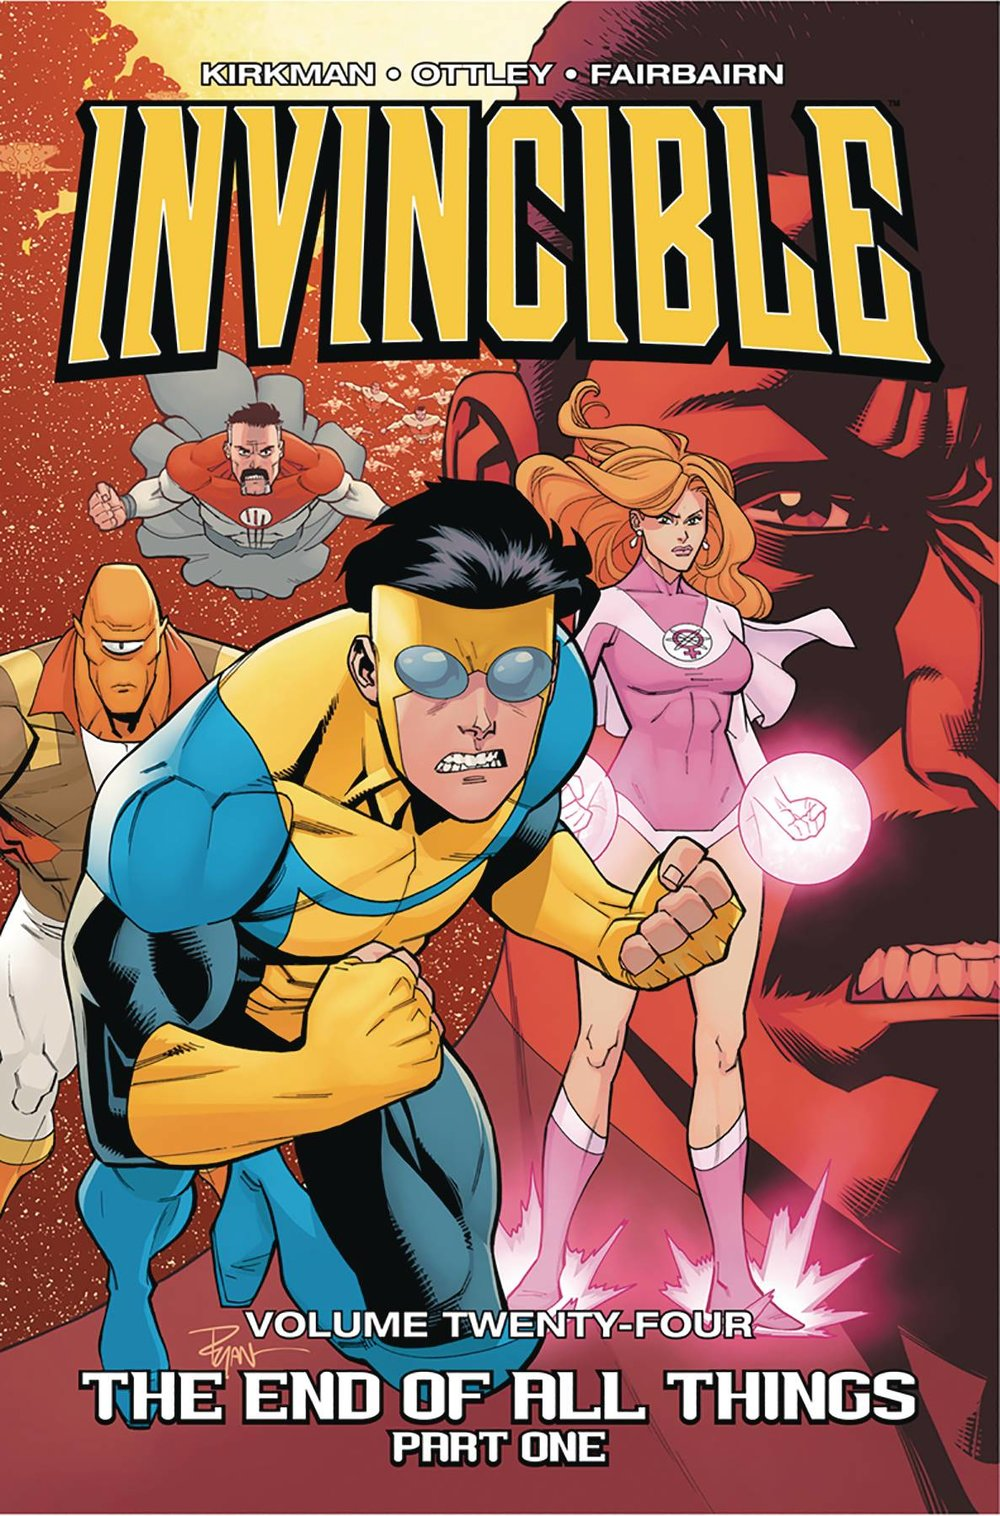 INVINCIBLE TP 24 END OF ALL THINGS PART 1.jpg